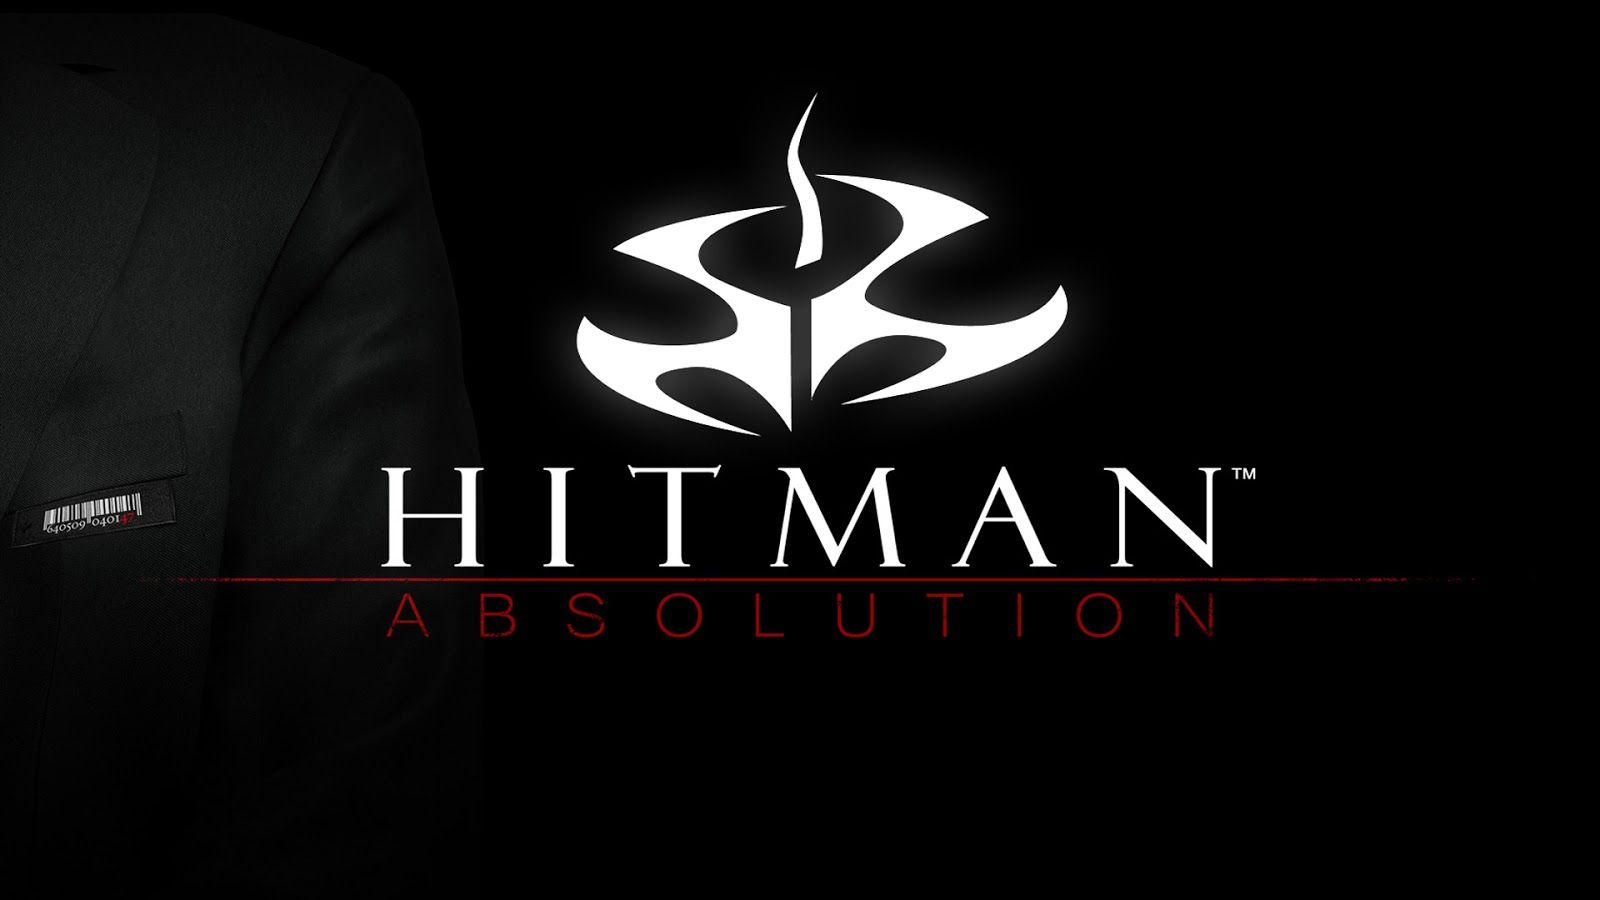 Hitman symbol wallpaper hd wallpapers pinterest symbols and hitman symbol wallpaper buycottarizona Gallery